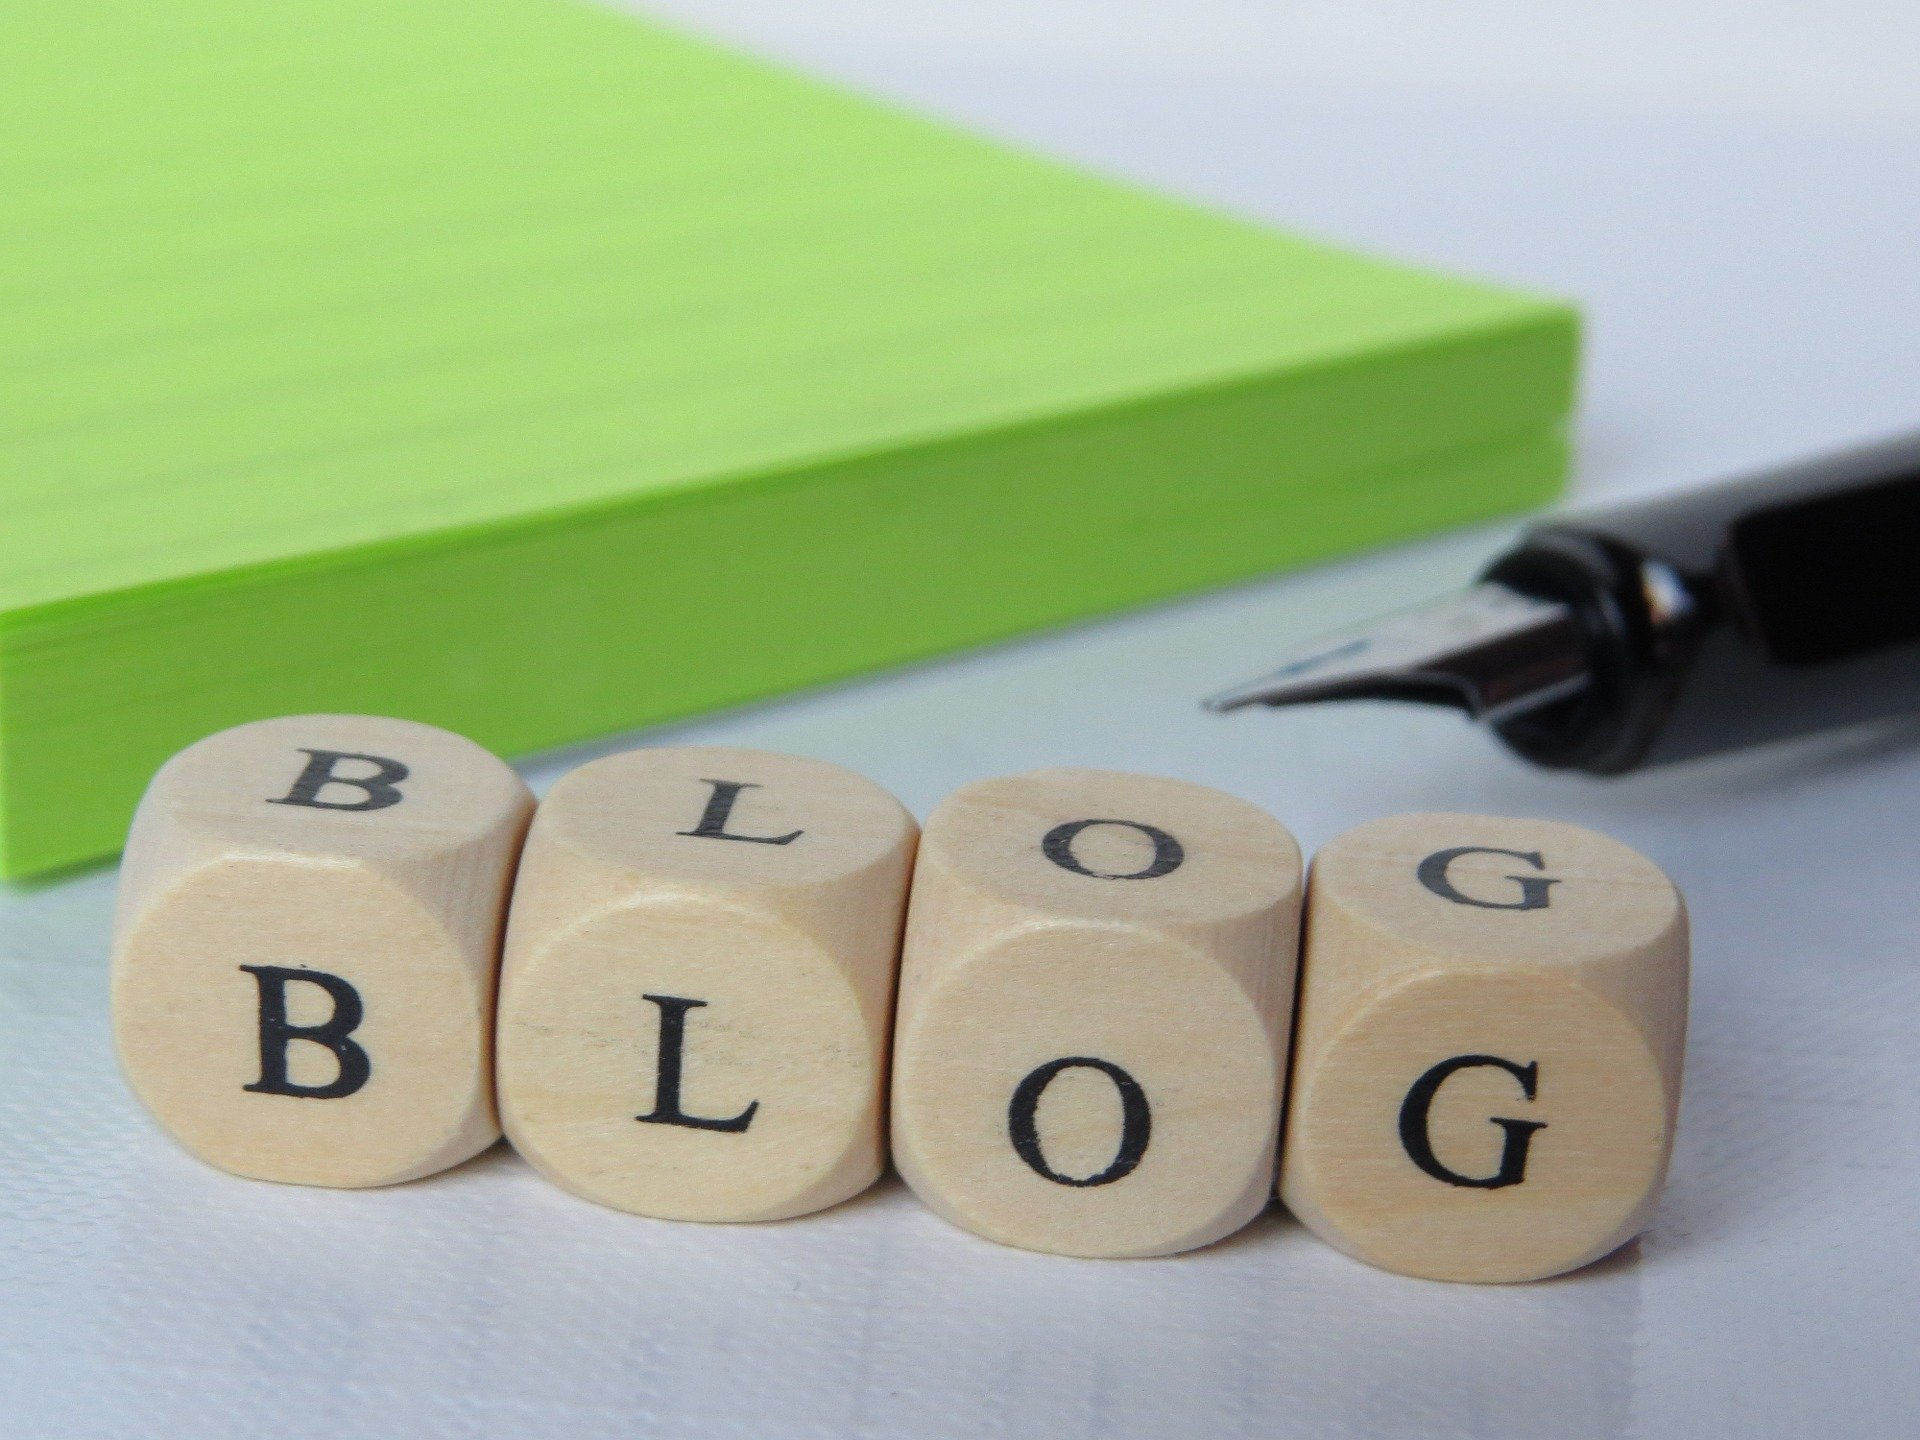 Do you know how often you should be posting to your blog?